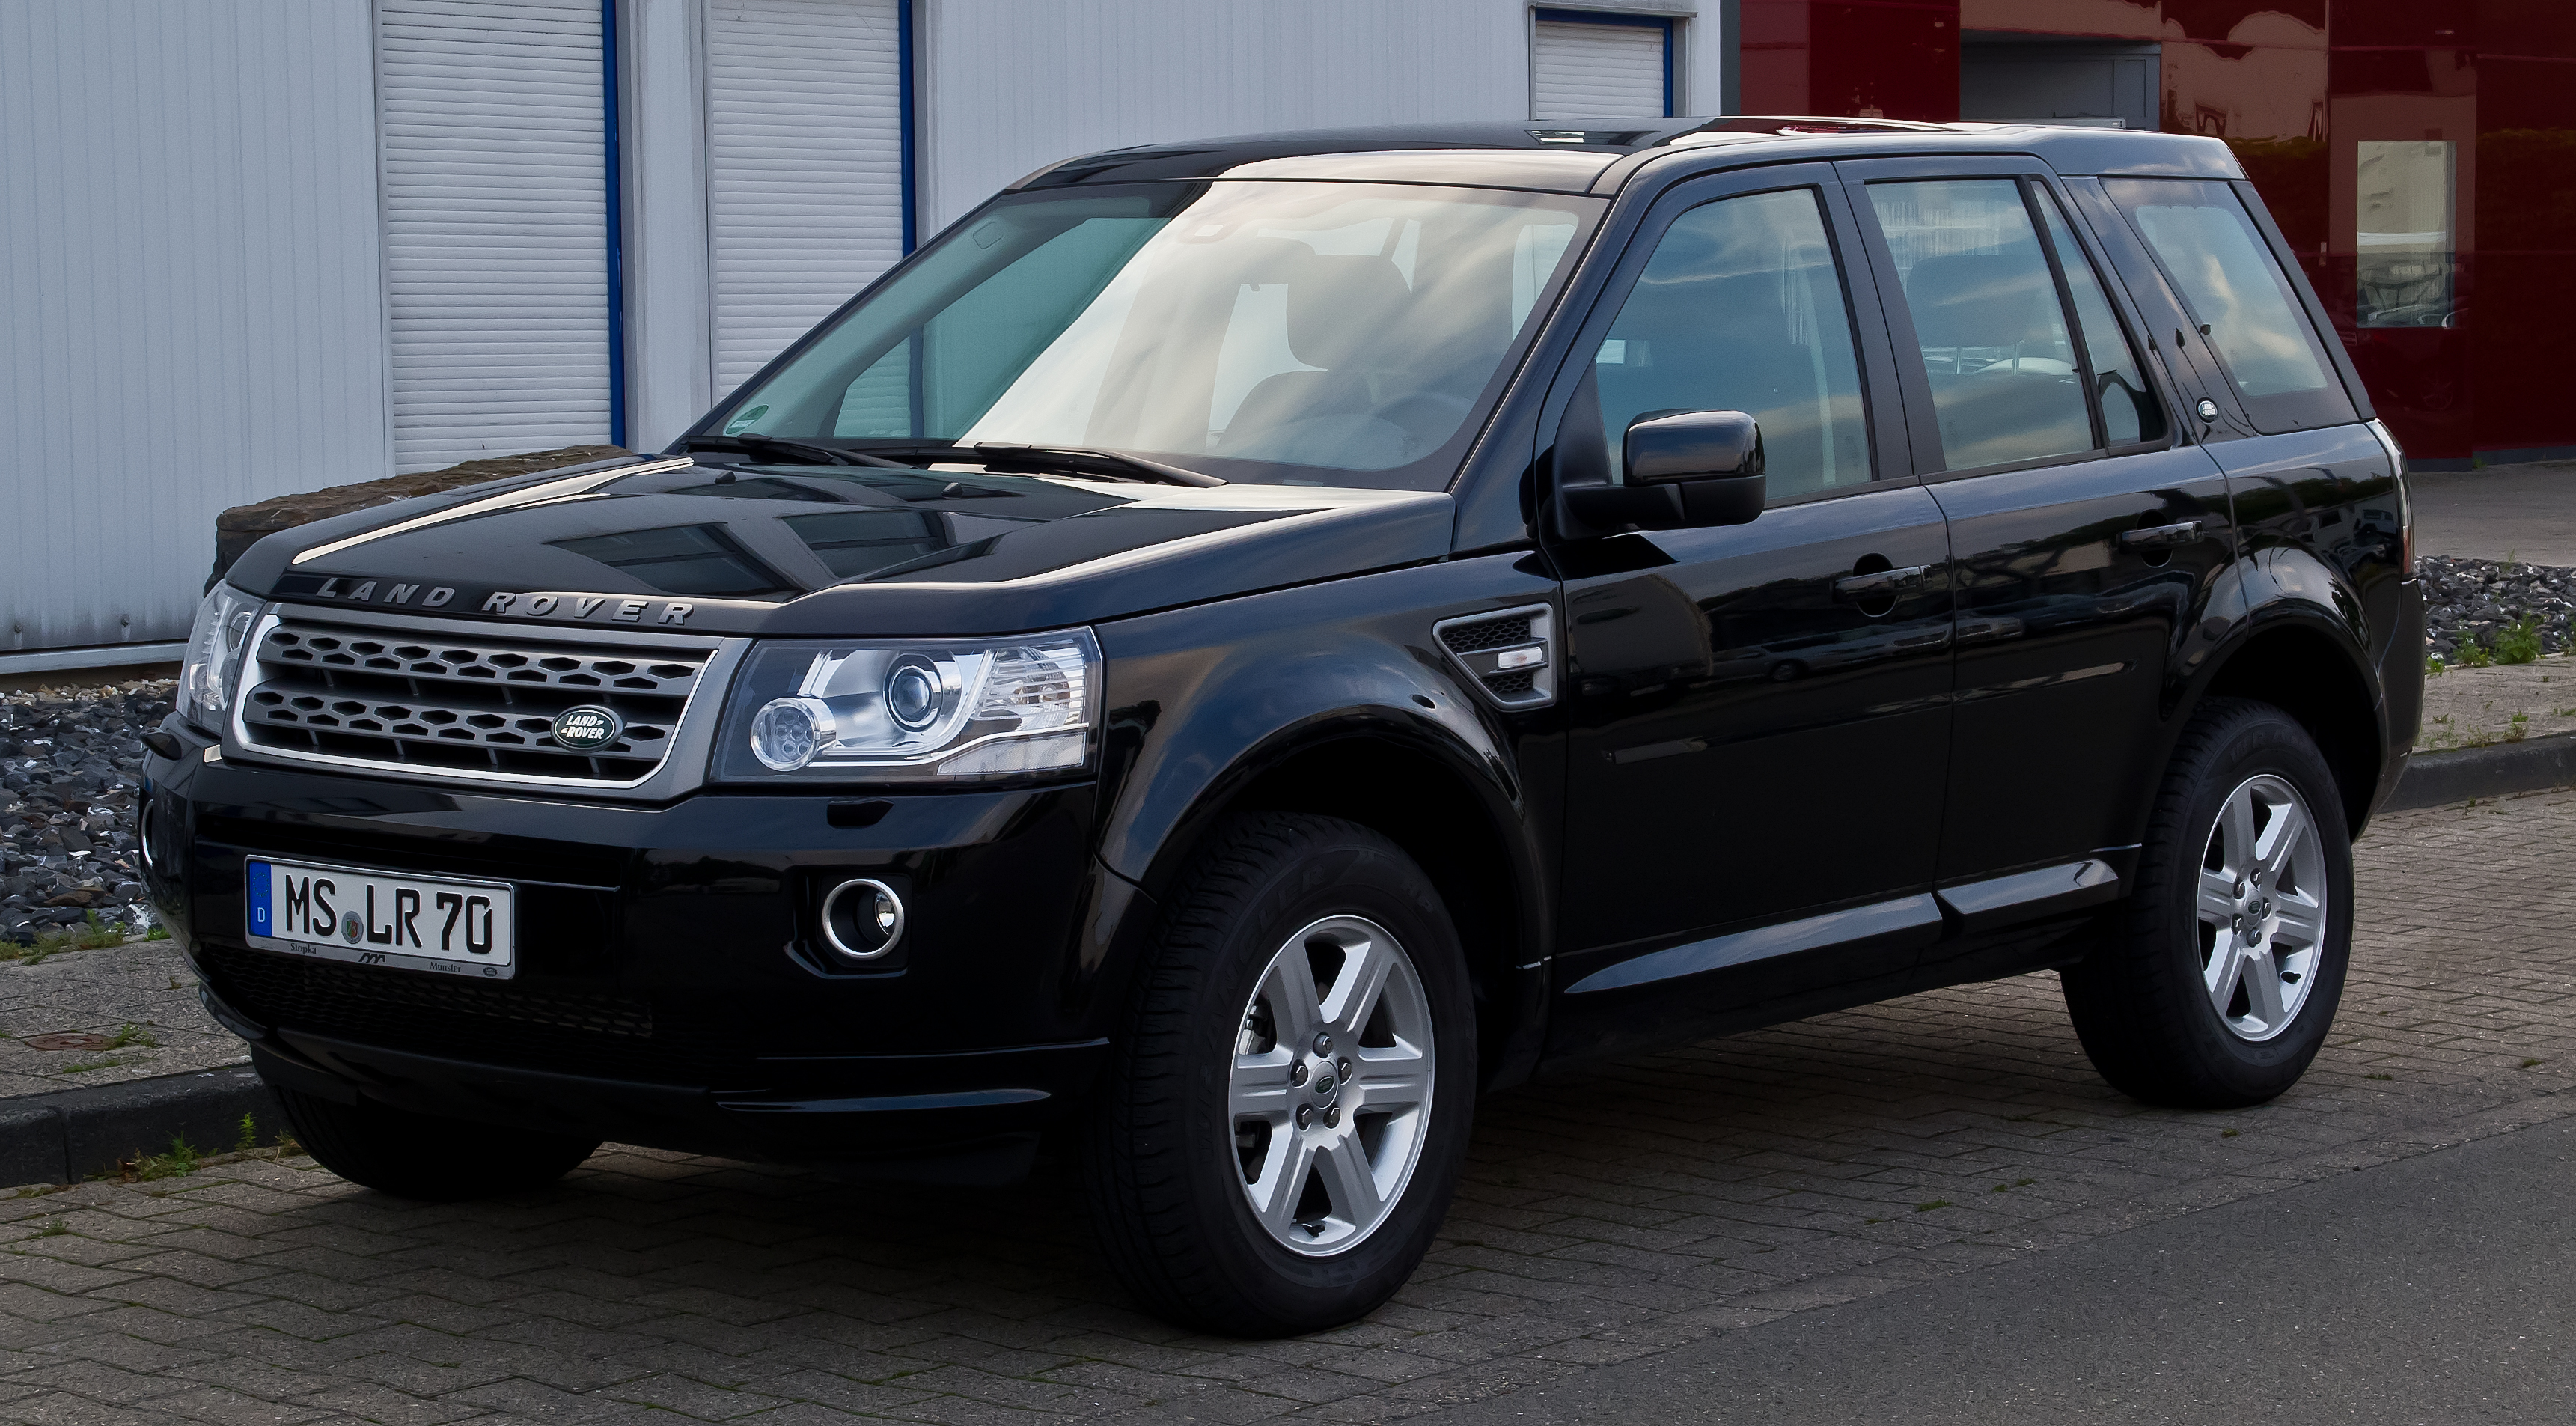 Land Rover Freelander Les Photos